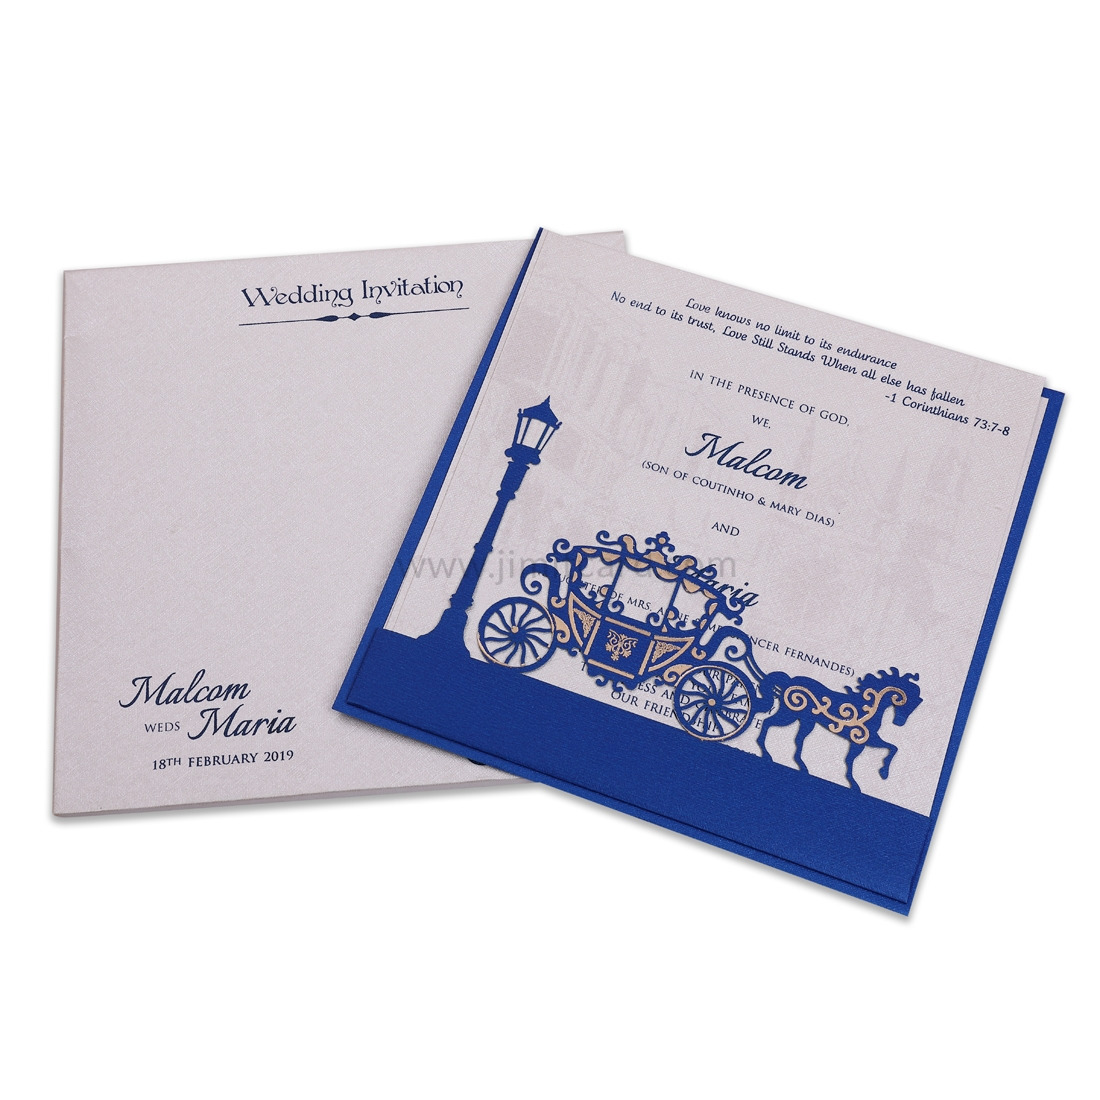 Silver and Blue Wedding Invitation Card with Laser Cut Work Design.-0